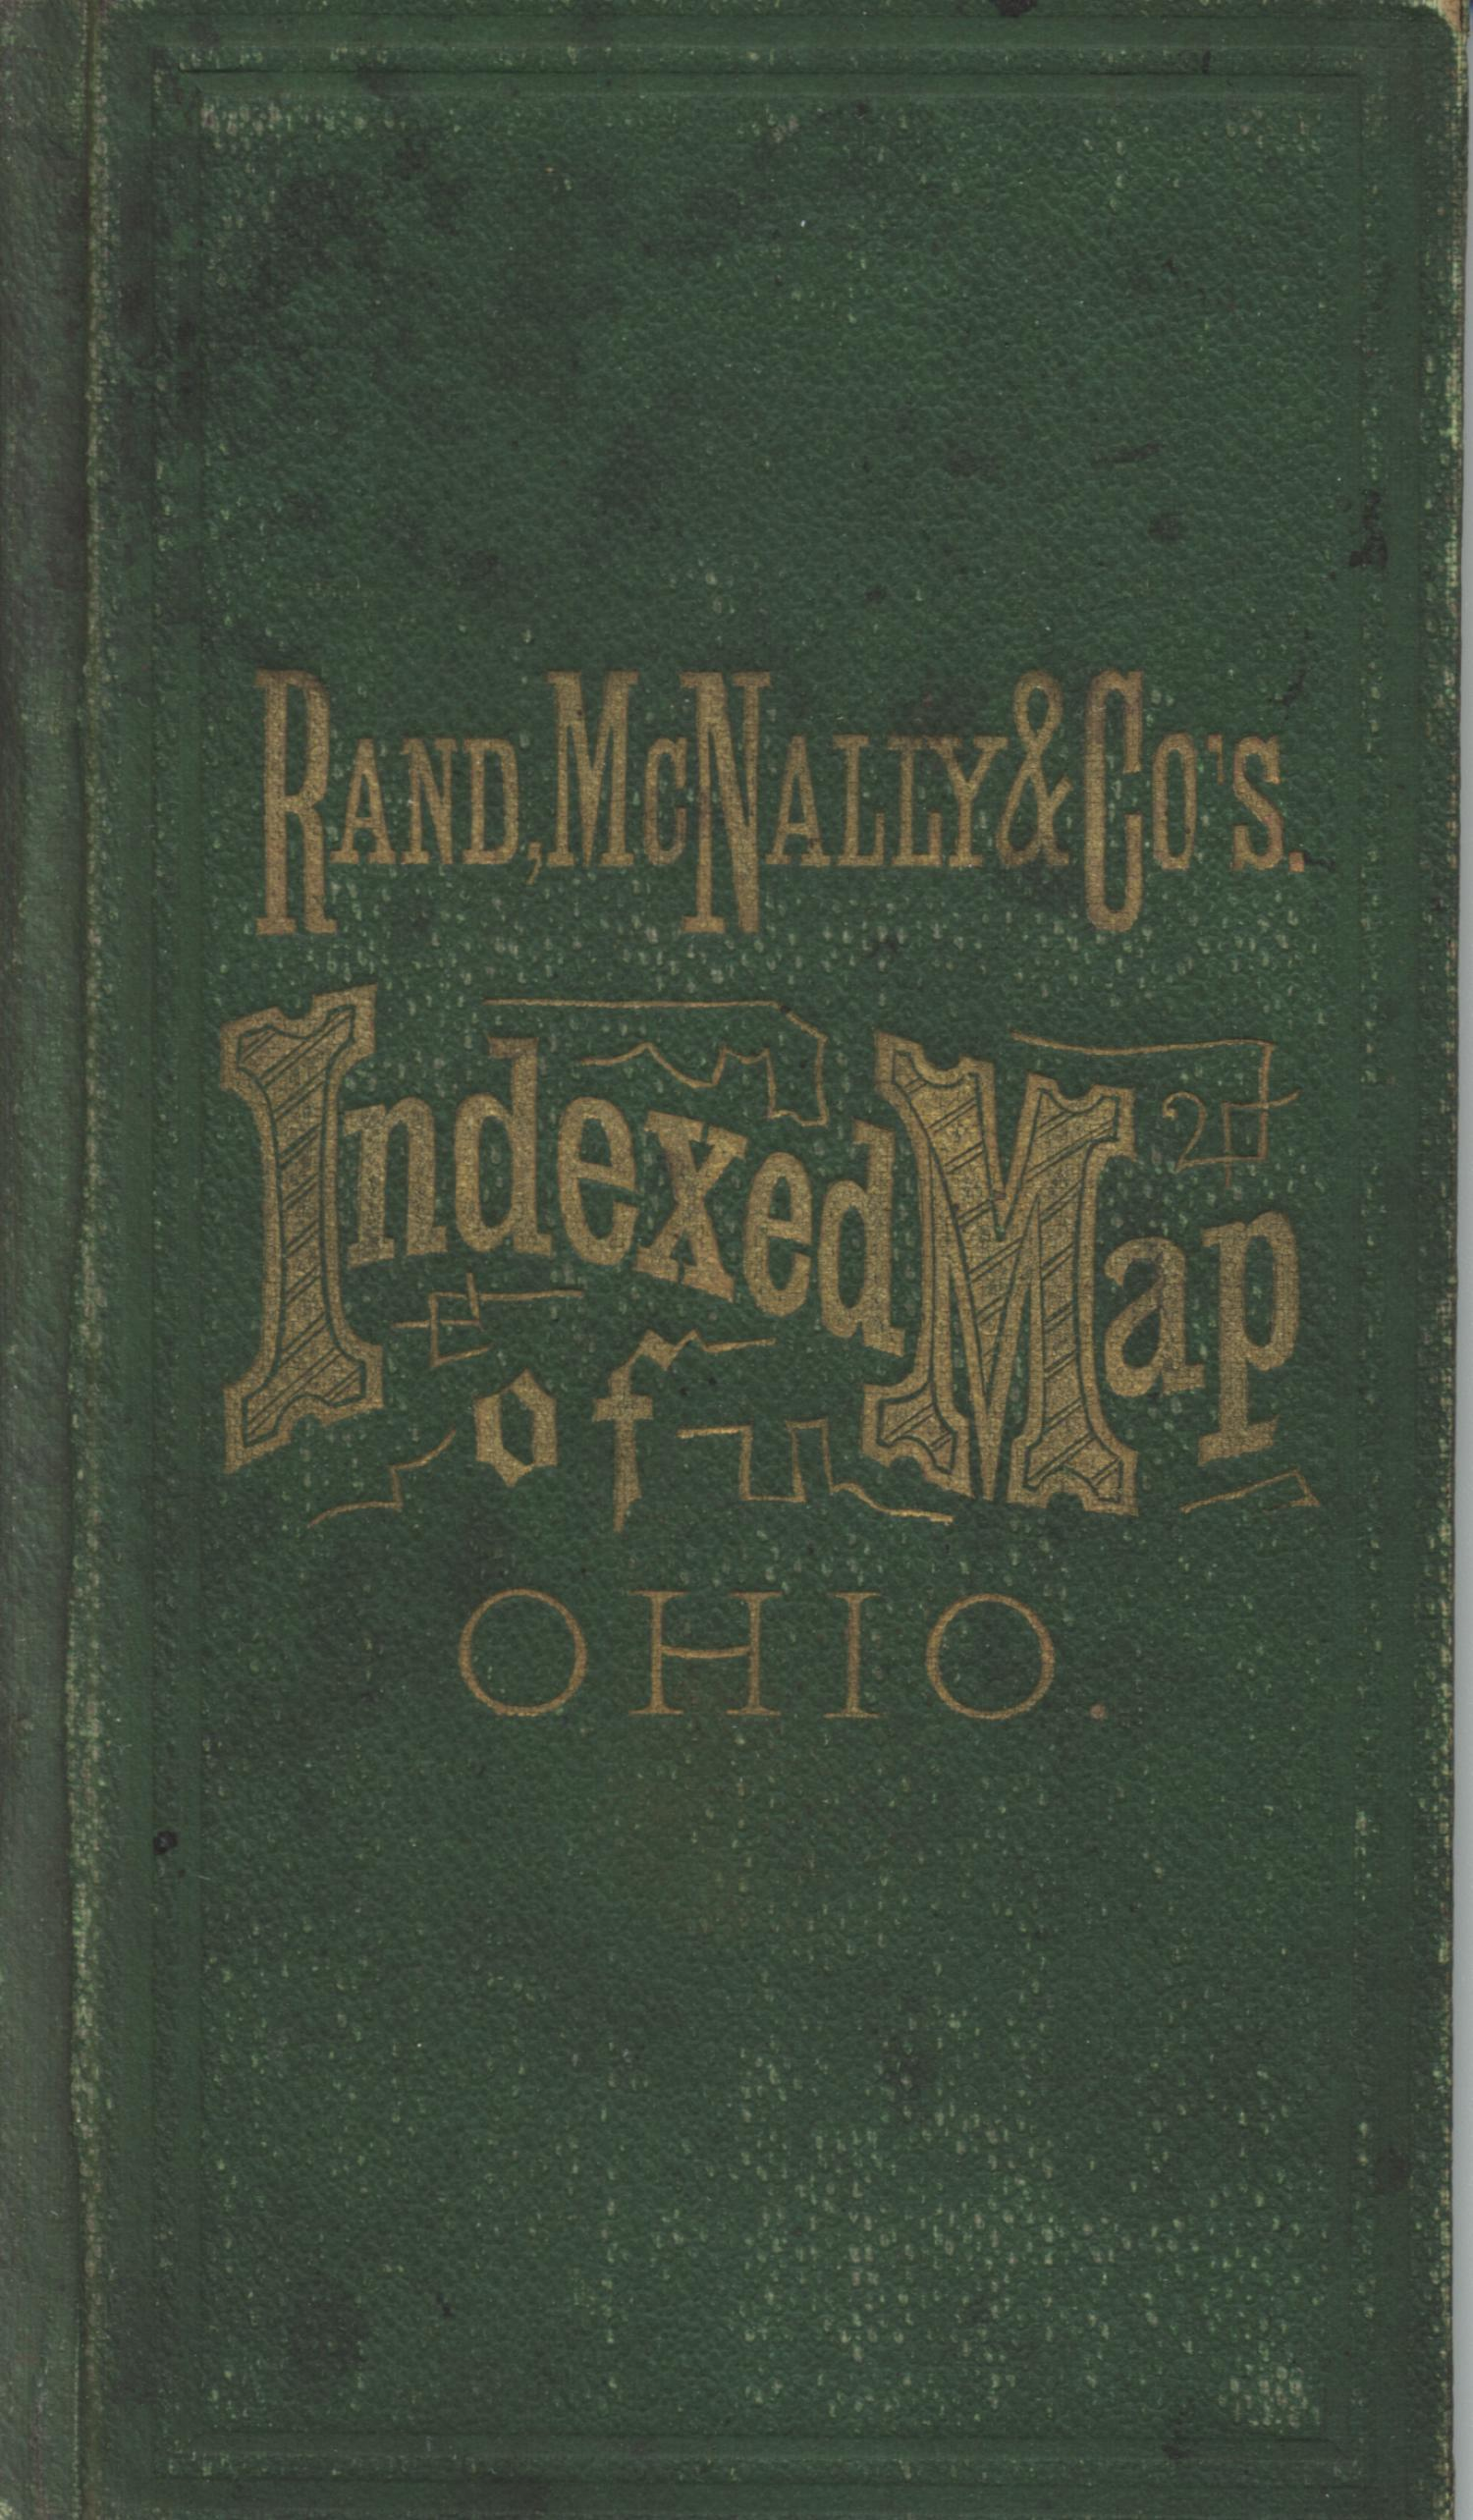 Rand, McNally & Co.s Ohio [Accompanying Text]., Explanation and supporting information related to map that shows late nineteenth century Ohio counties, railroads, canals, cities, towns, and notable physical features.,